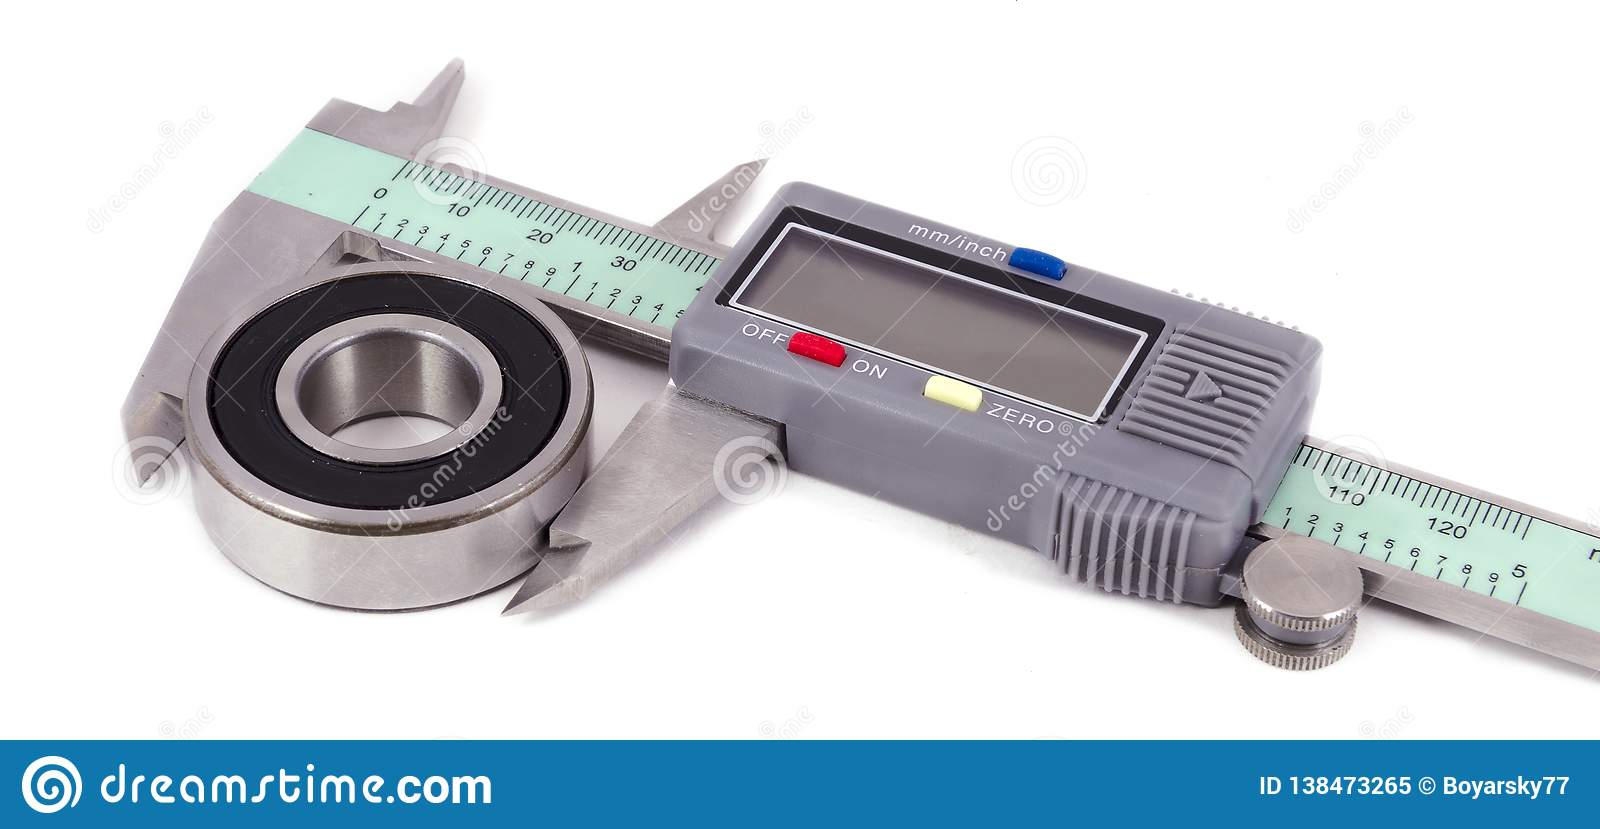 Bearing and electronic caliper on a white background